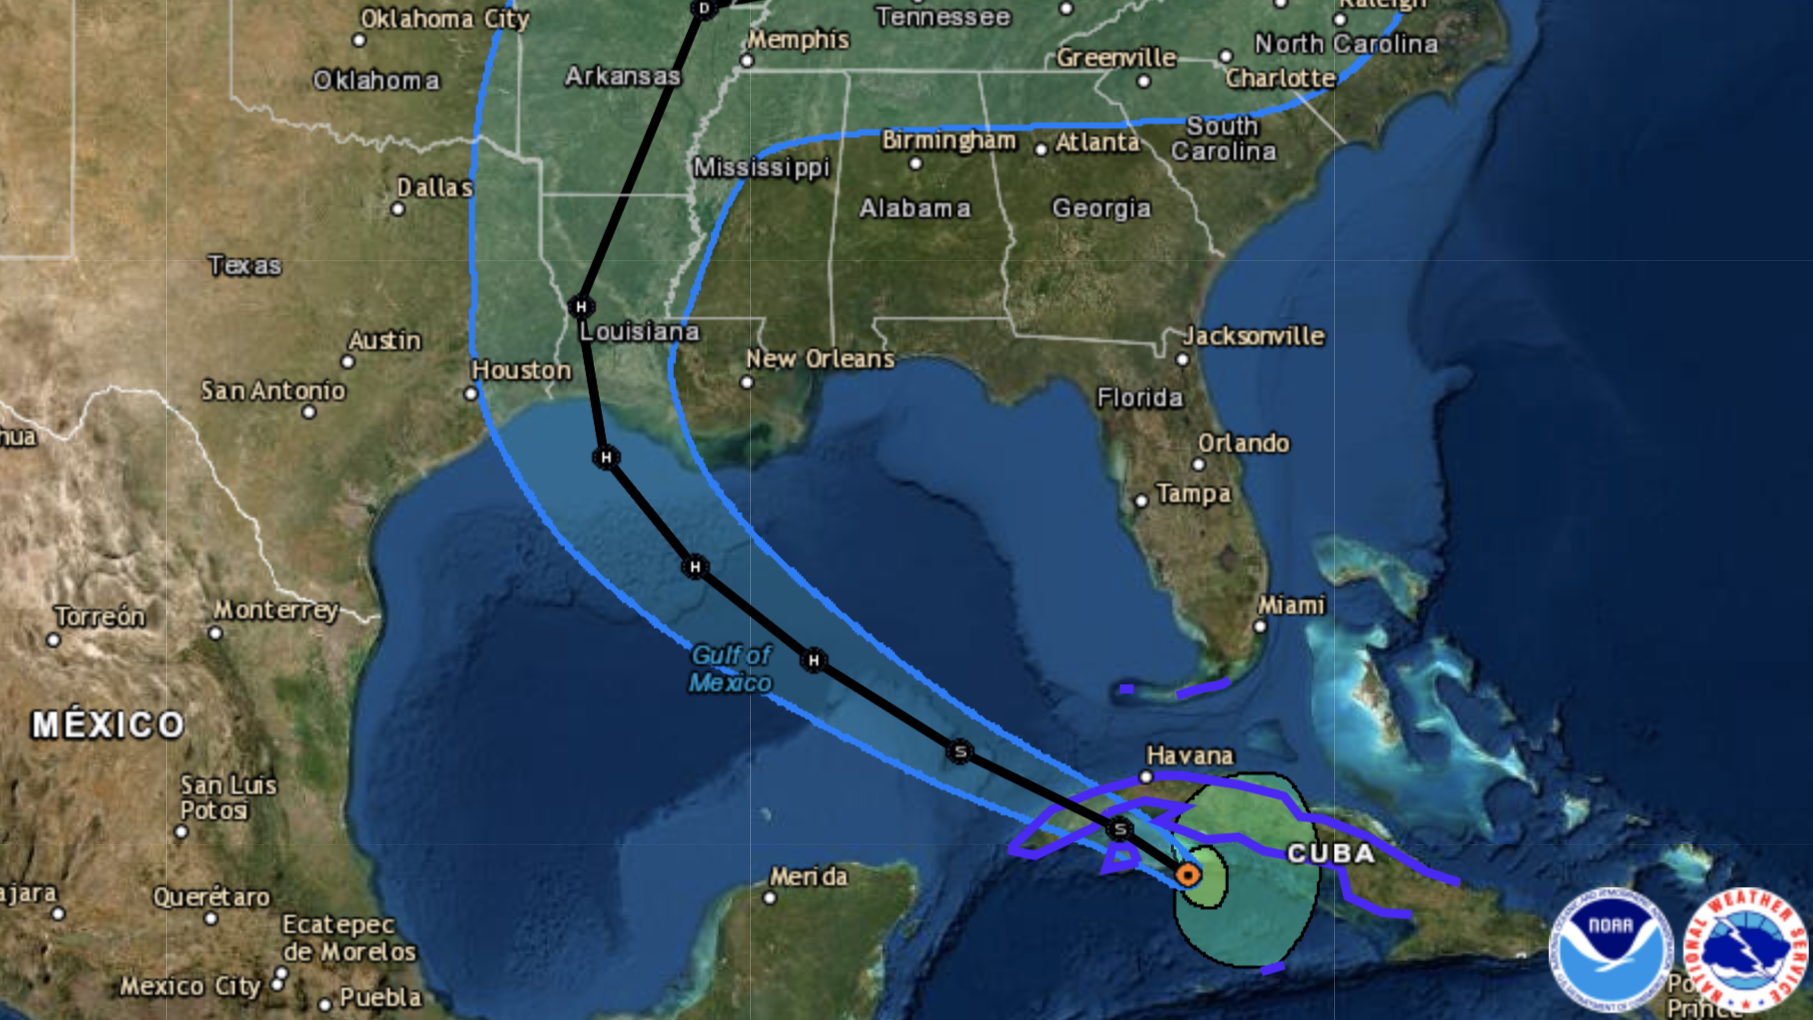 Storm Updates: Laura Is Predicted To Be Category 2 Hurricane In Gulf; Marco Fizzles